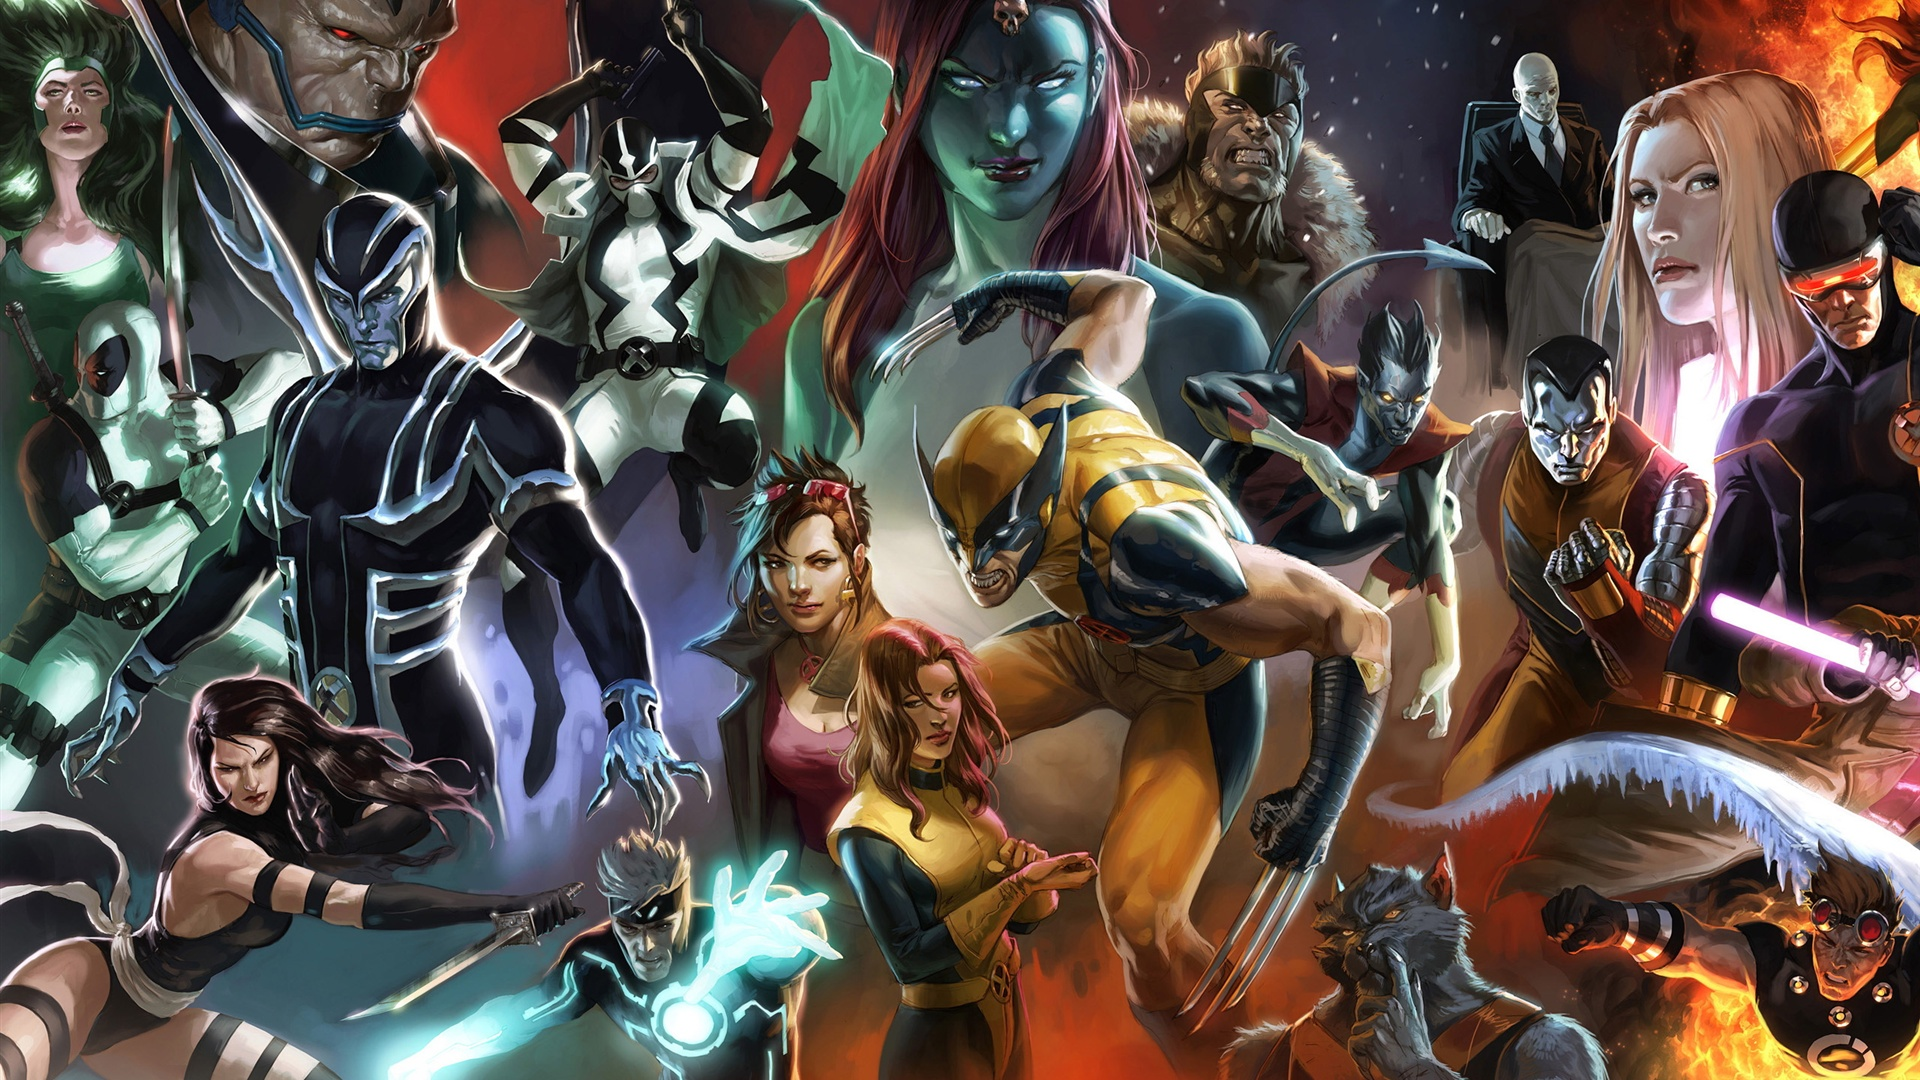 X Men Comic Wallpaper - WallpaperSafari